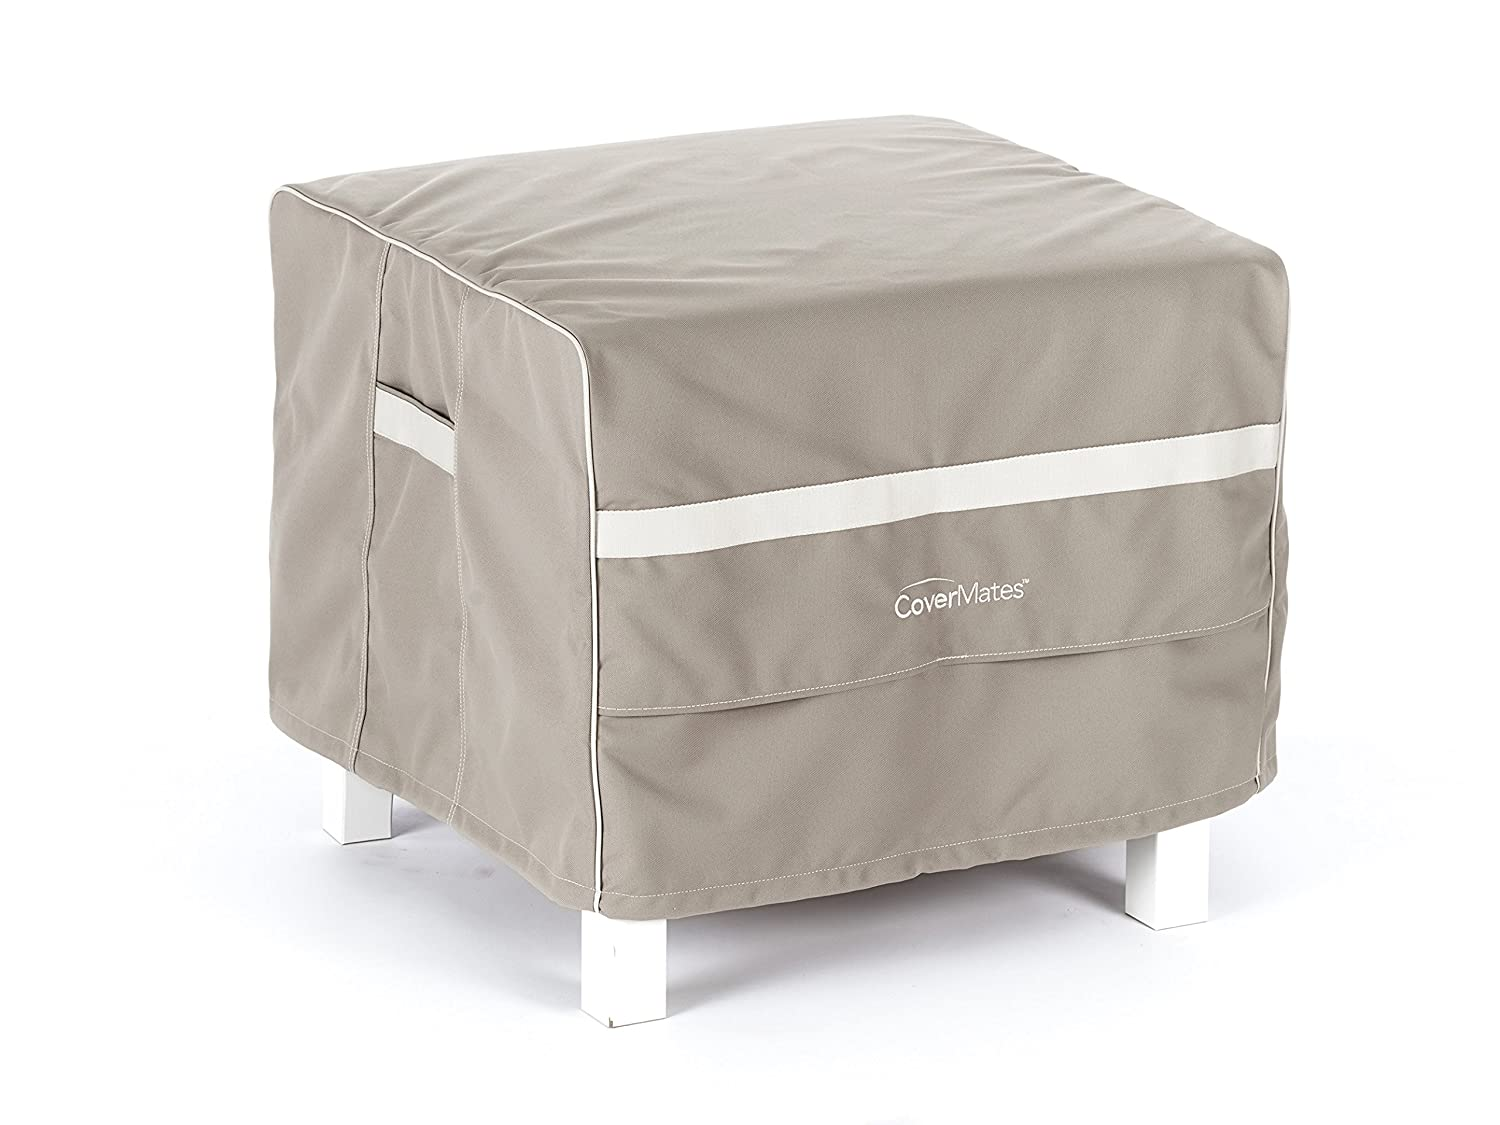 Covermates Square Ottoman Cover 52W x 52D x 25H Prestige 900D Polyester Front Back Covered Vents Reinforced Handles 7 YR Warranty Weather Resistant – Clay